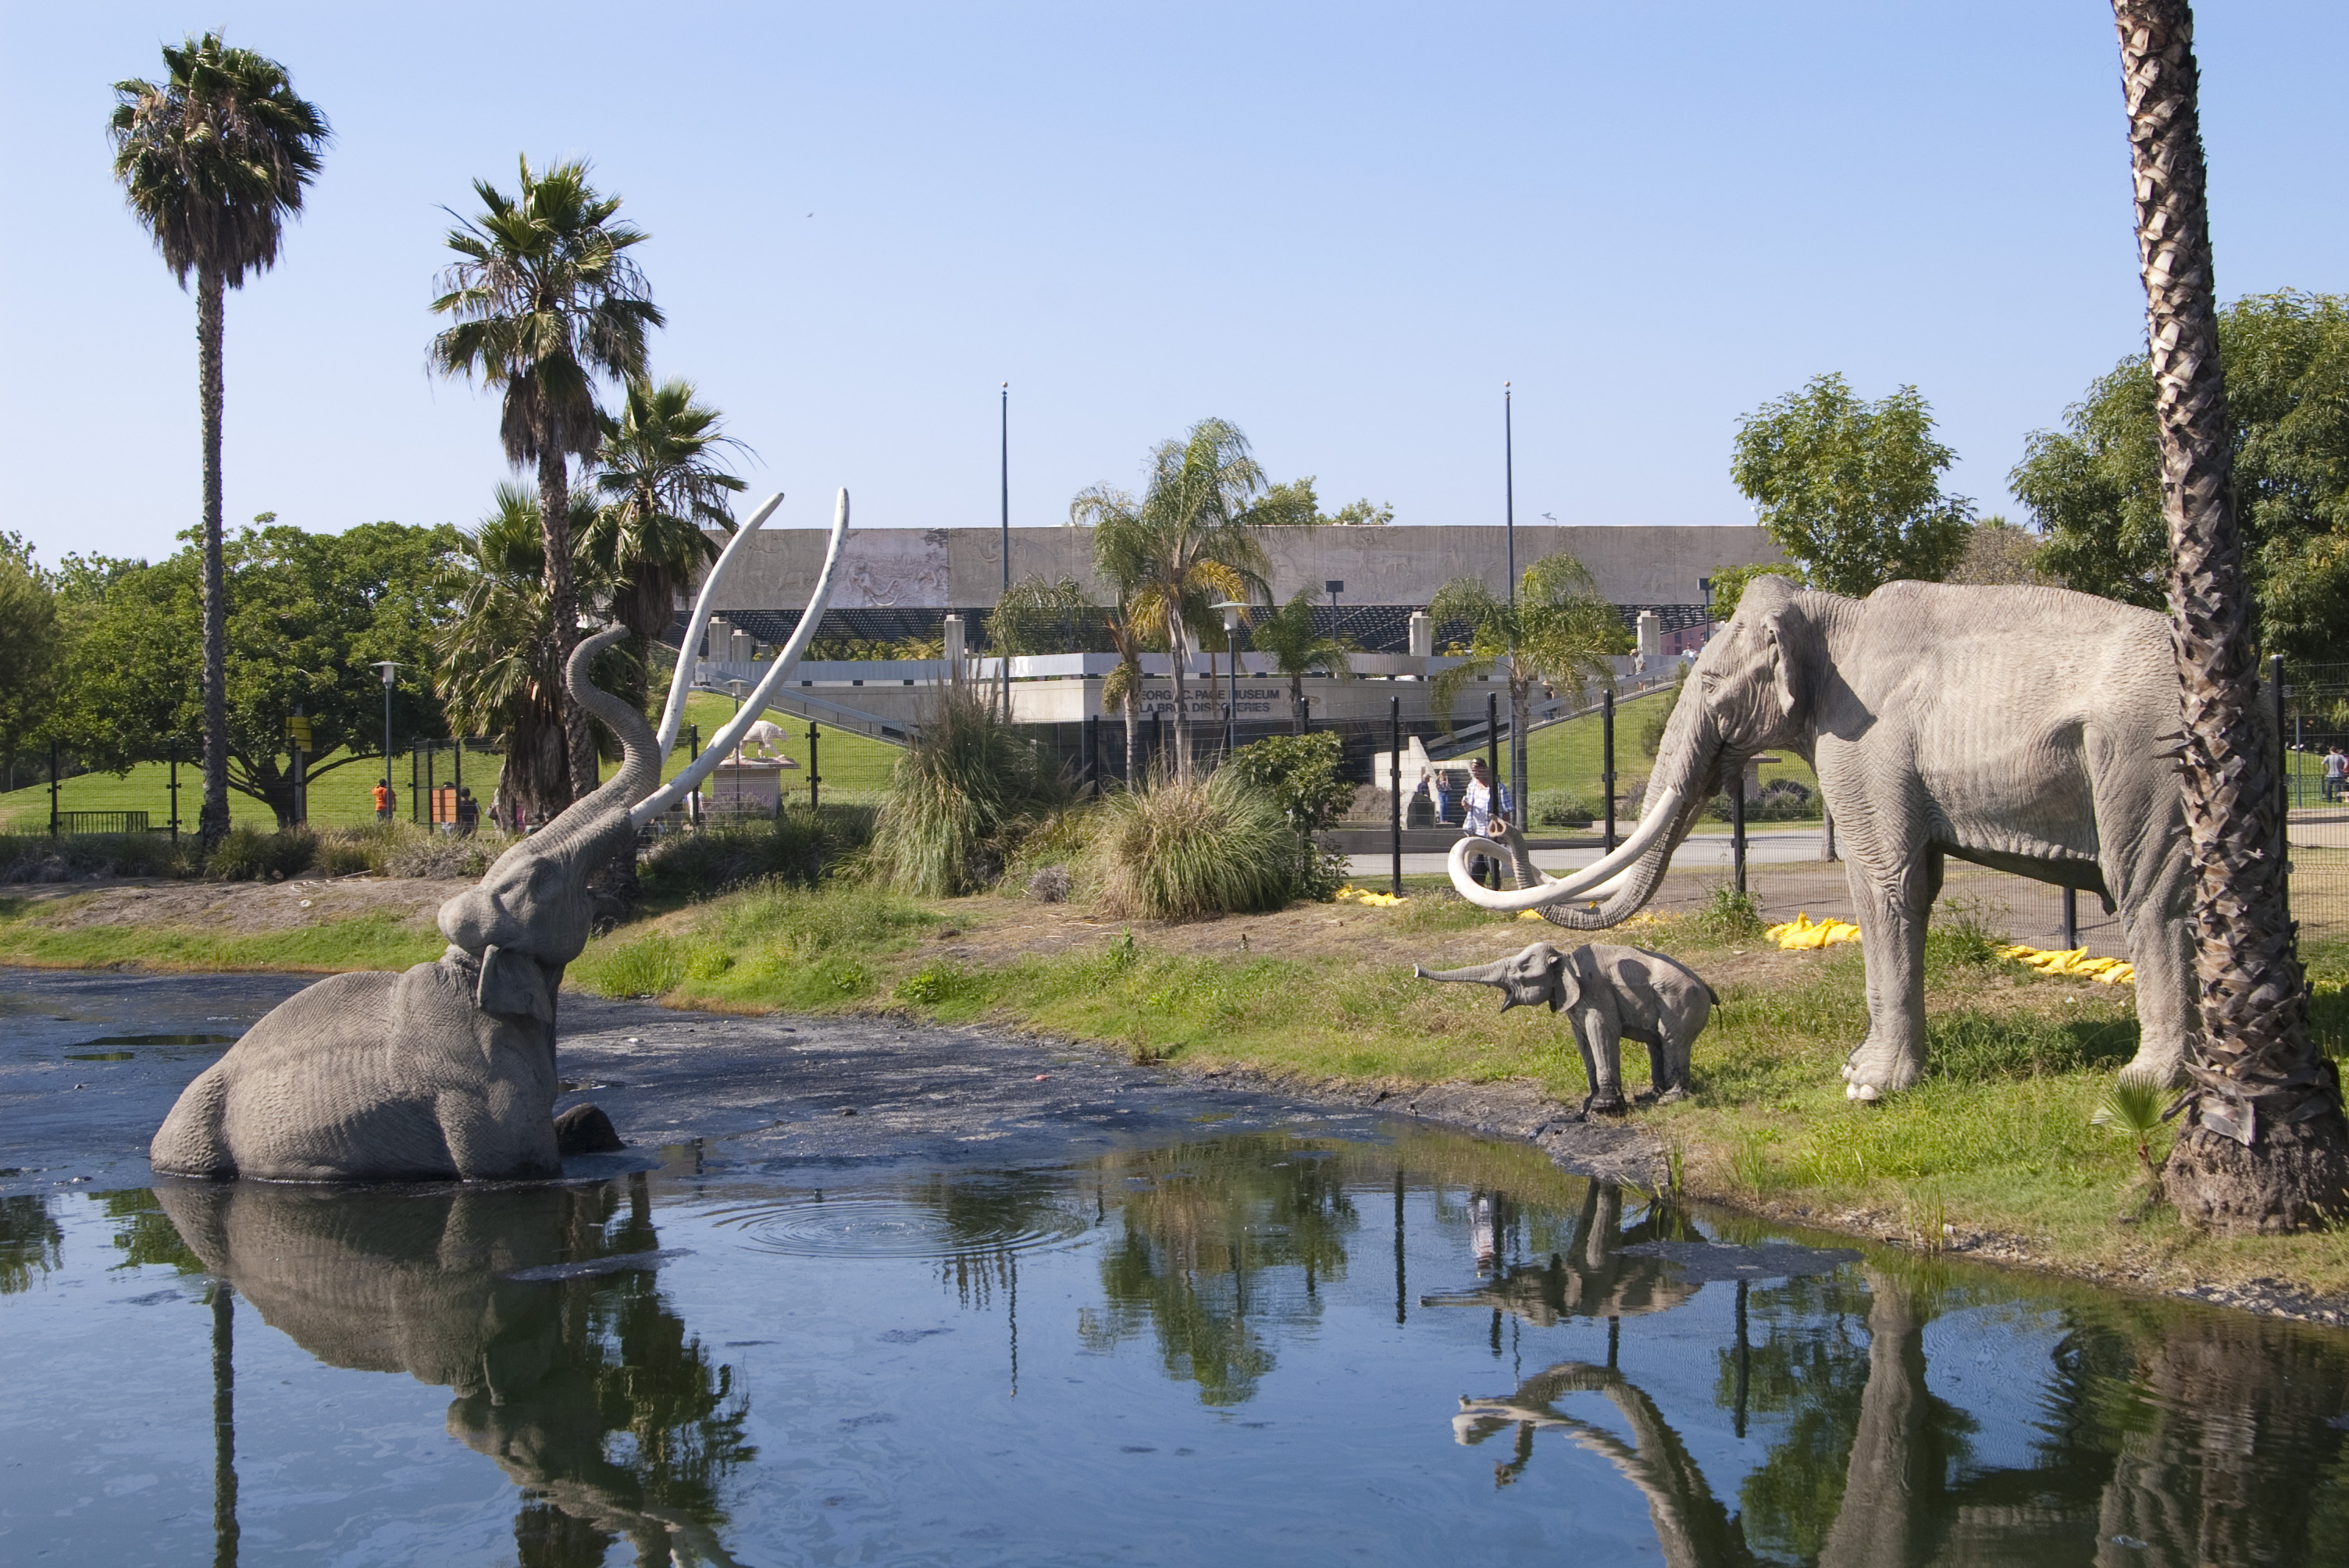 la brea tar pits Serious scientific excavations didn't commence at the la brea tar pits until the beginning of the 20th century, but the history of the pits stretches back long.